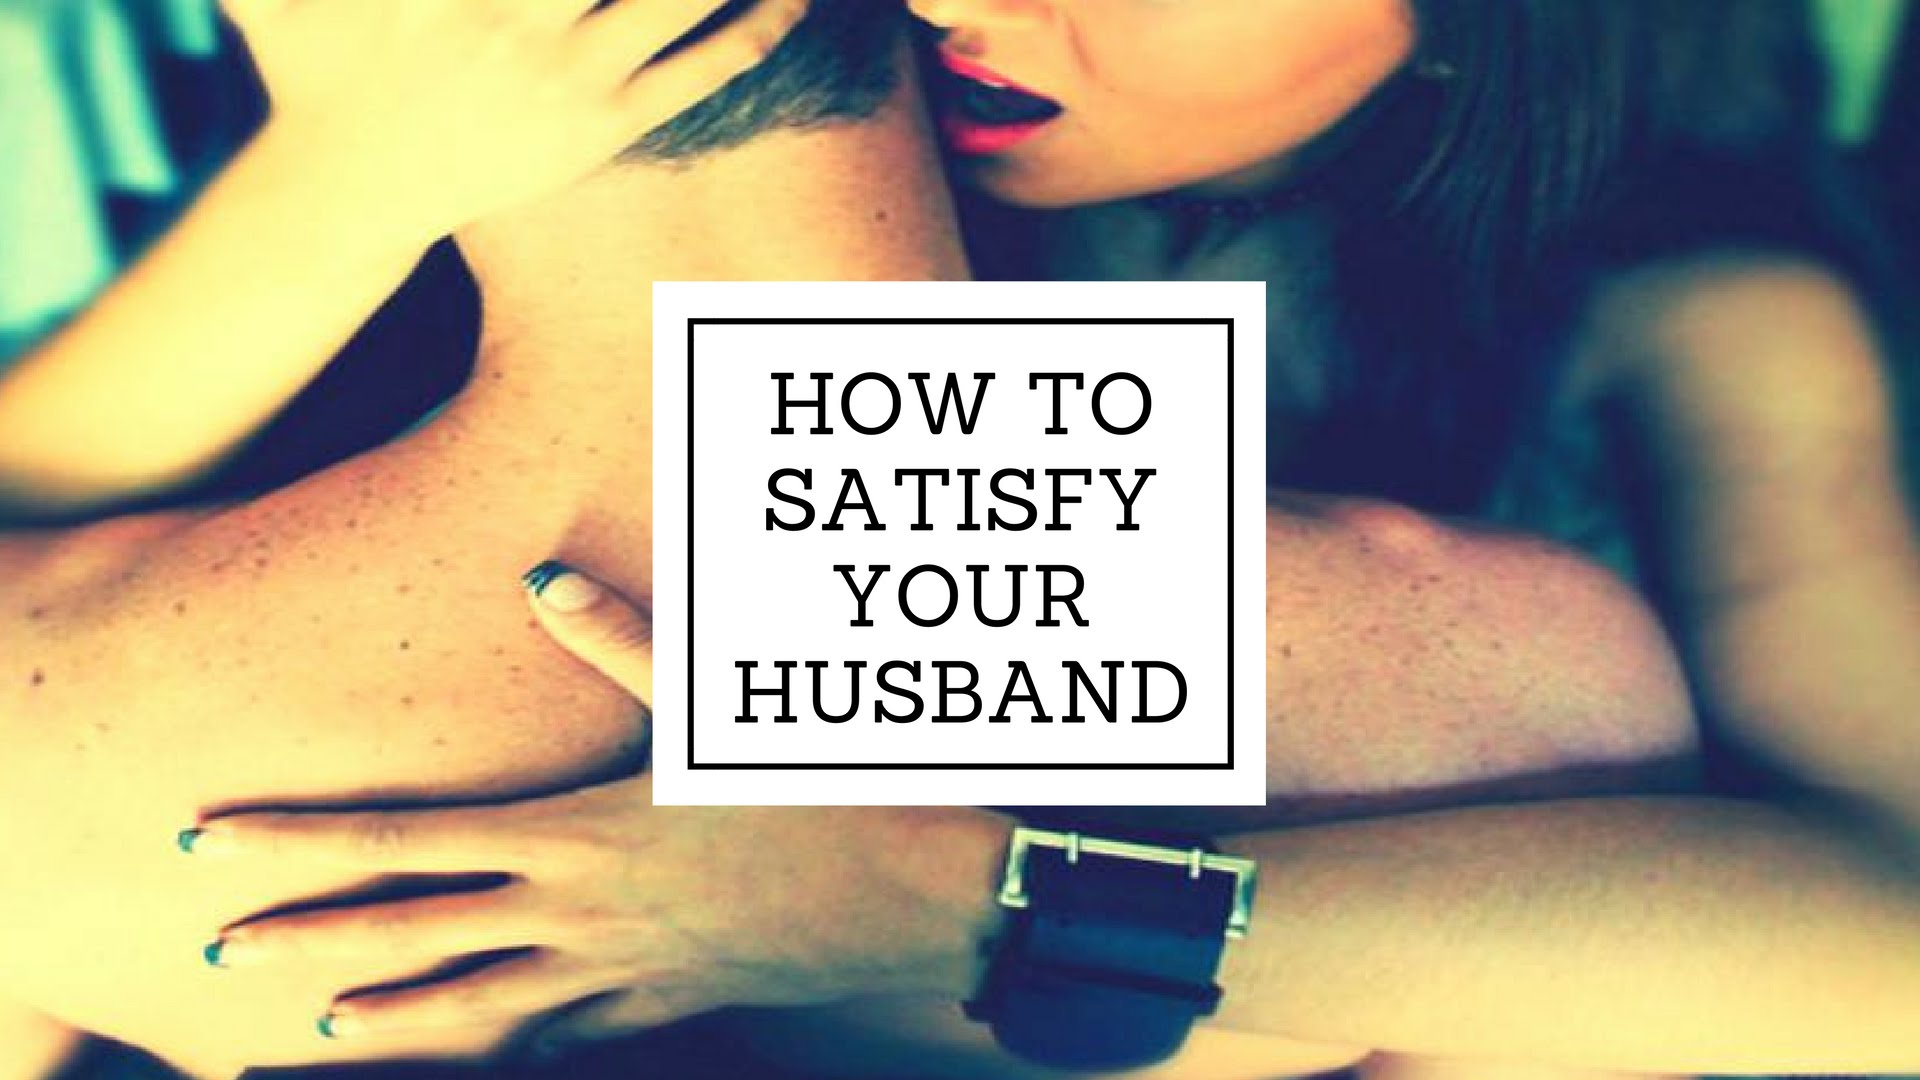 How to satisfy husband